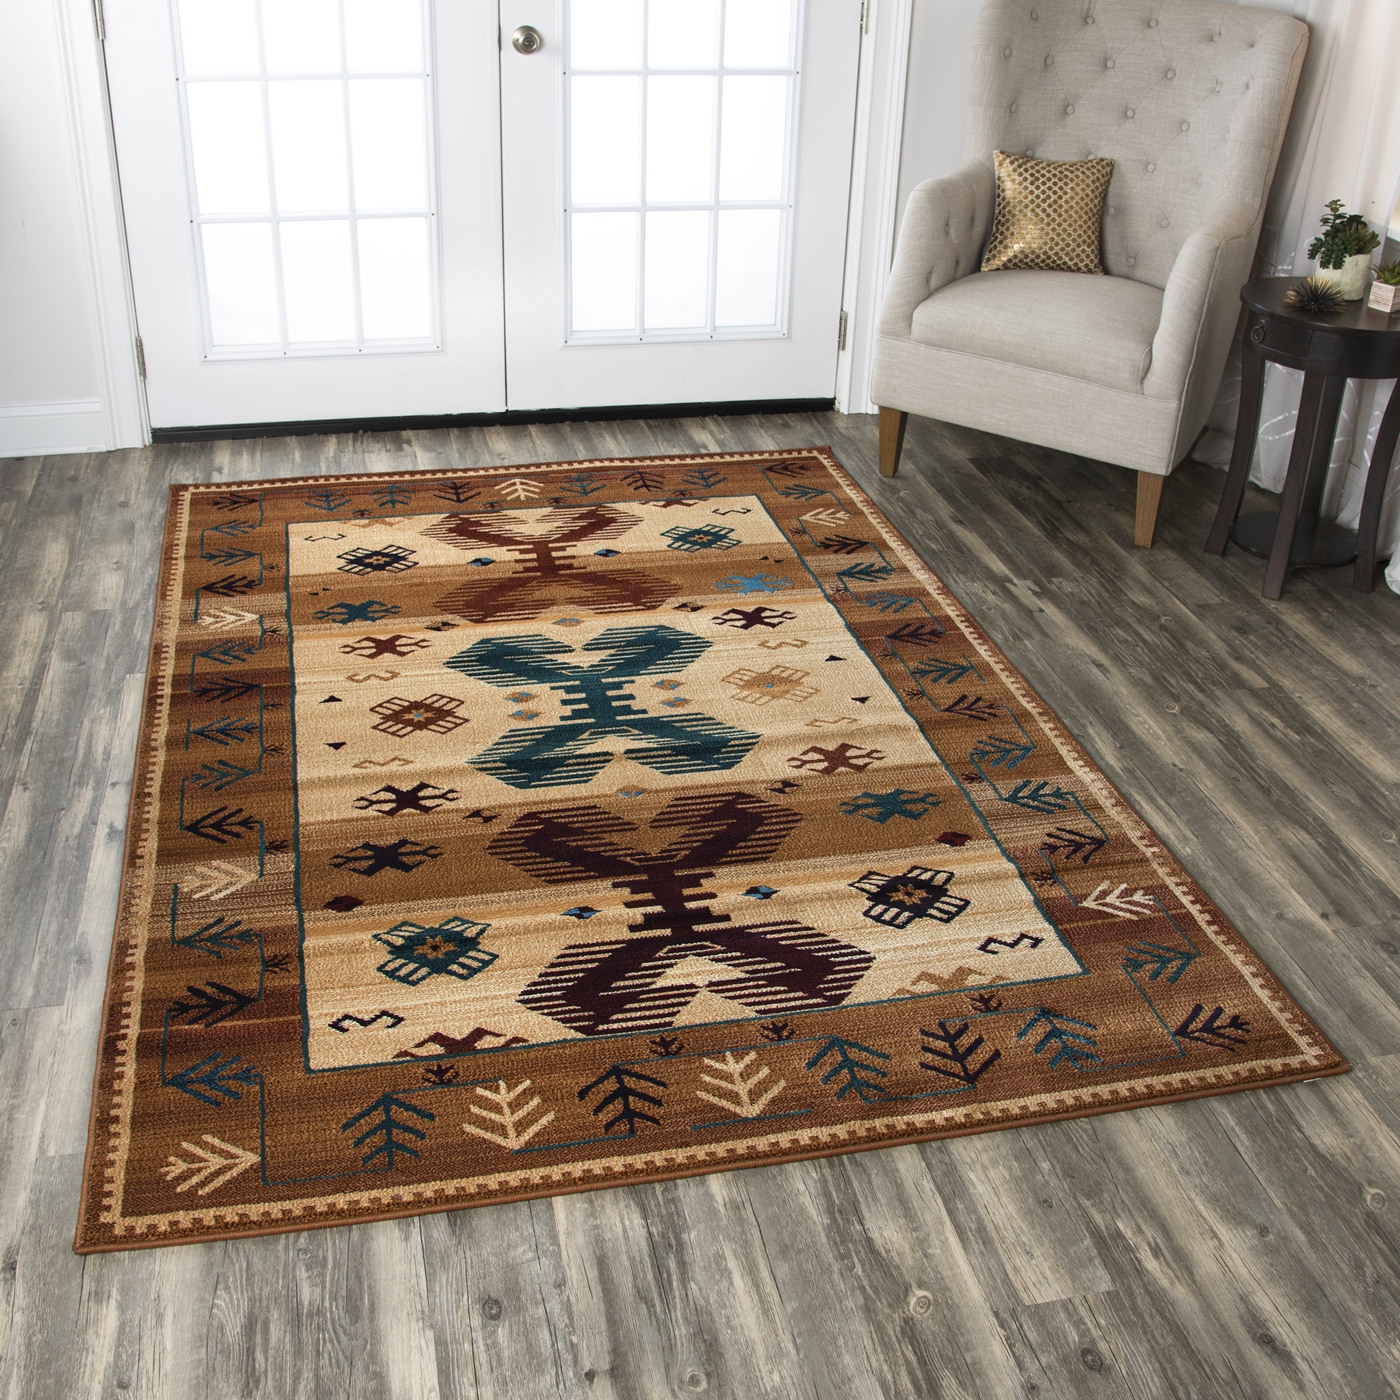 Tribal Rug Nz: Bellevue Border Southwest Tribal Area Rug In Earthy Colors